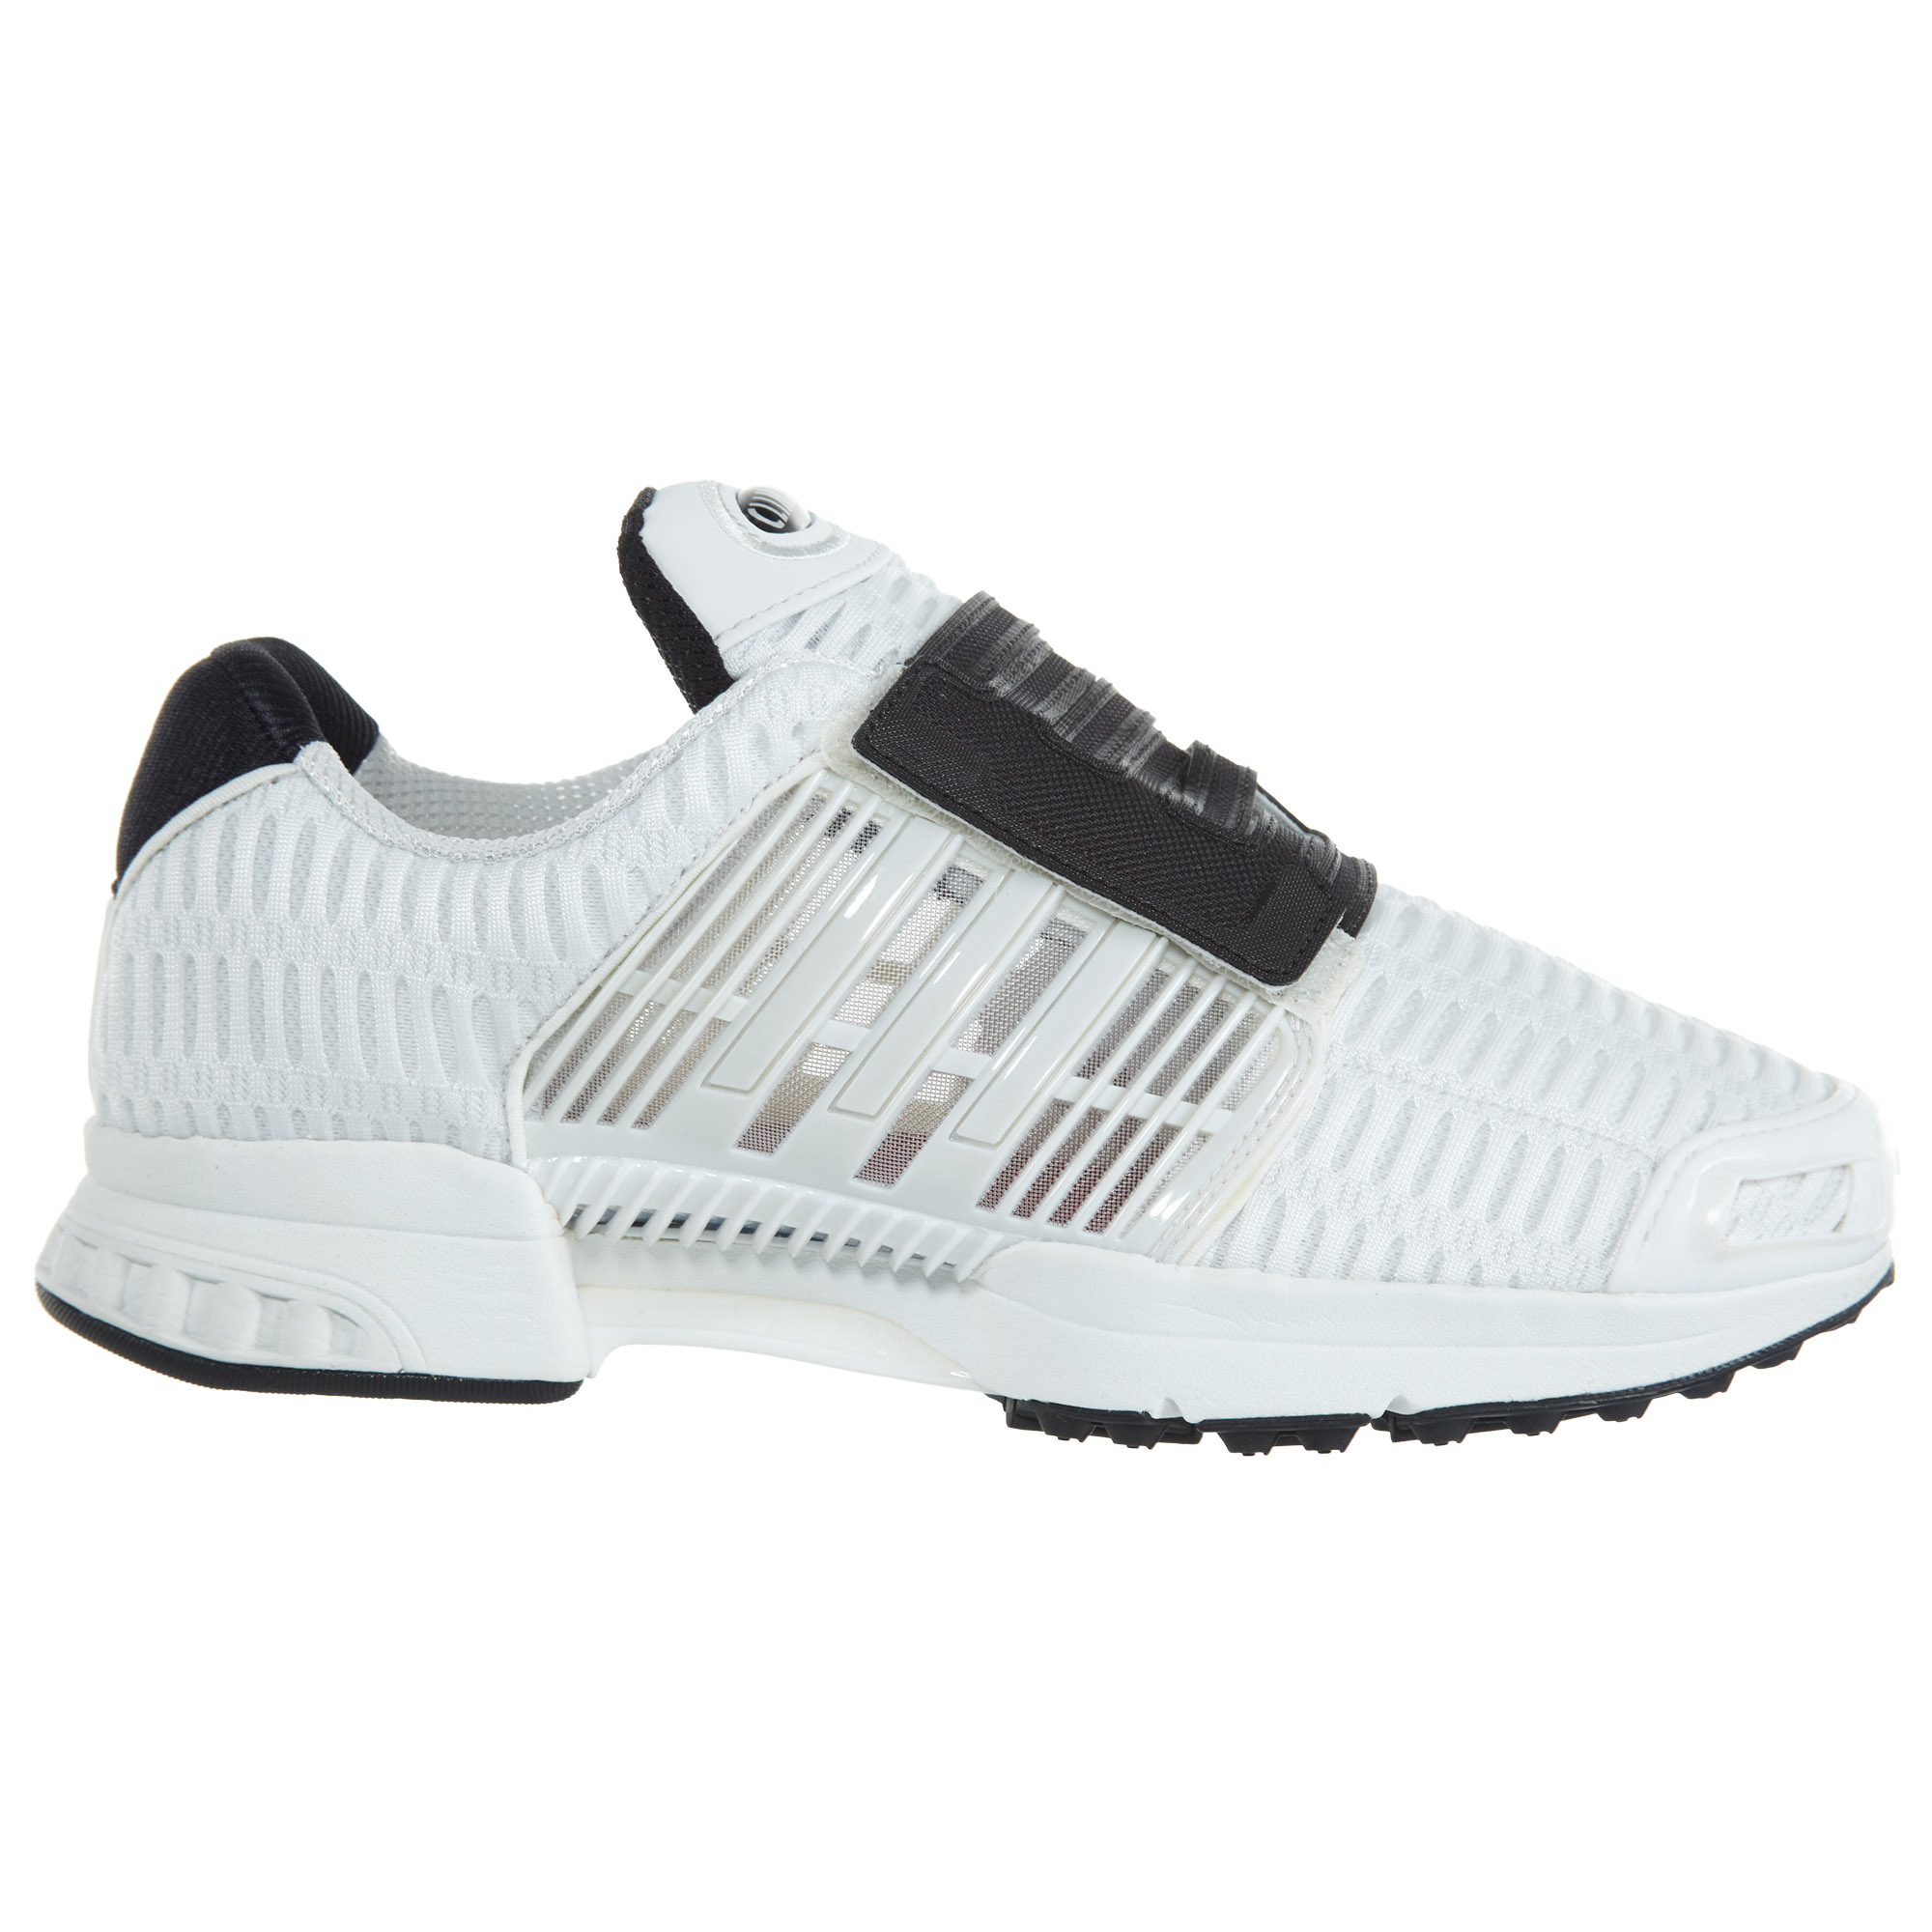 adidas climacool st